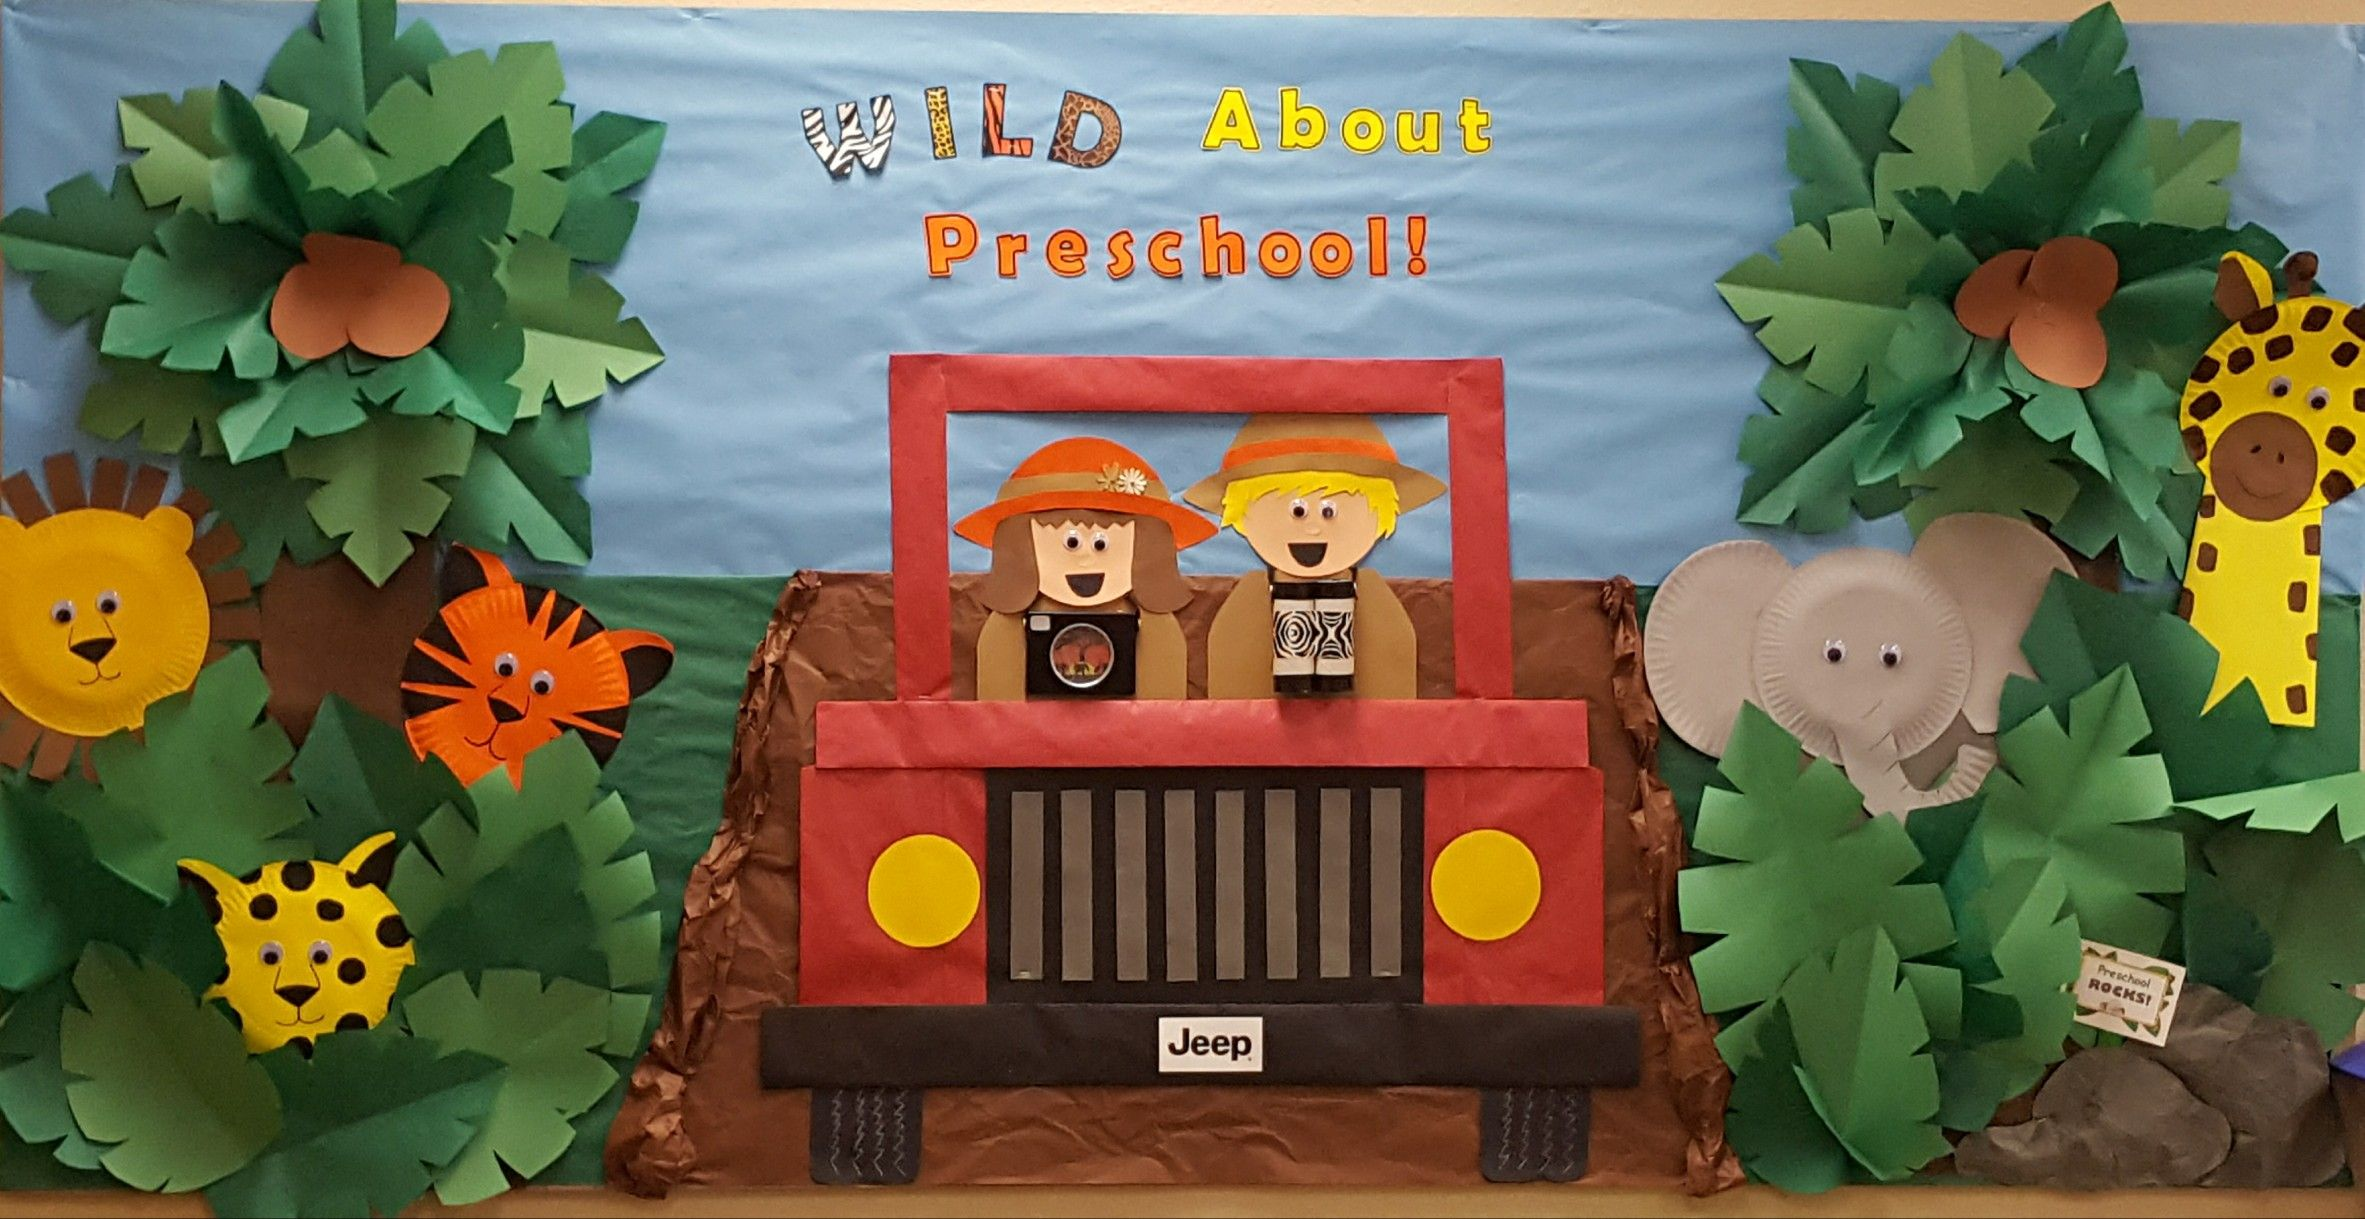 Wild About Preschool Jungle Themed Bulletin Board All